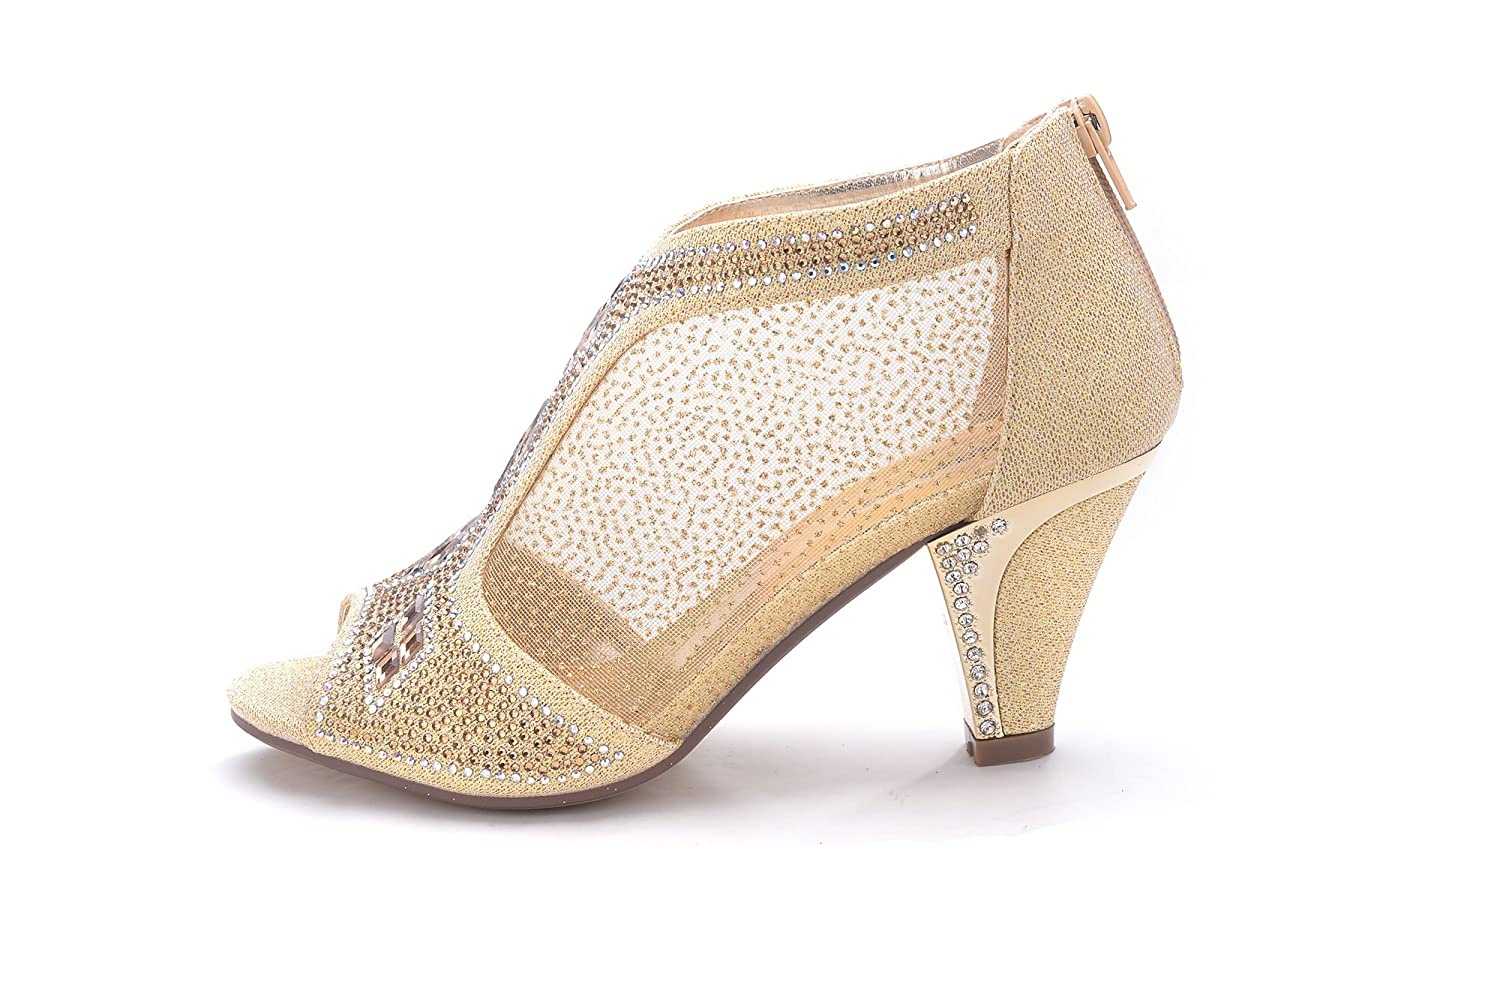 29339993f3c75 Ashley A Collection Women's Lexie Crystal Dress Heels Low Heels Wedding  Shoes A-KIMI-26